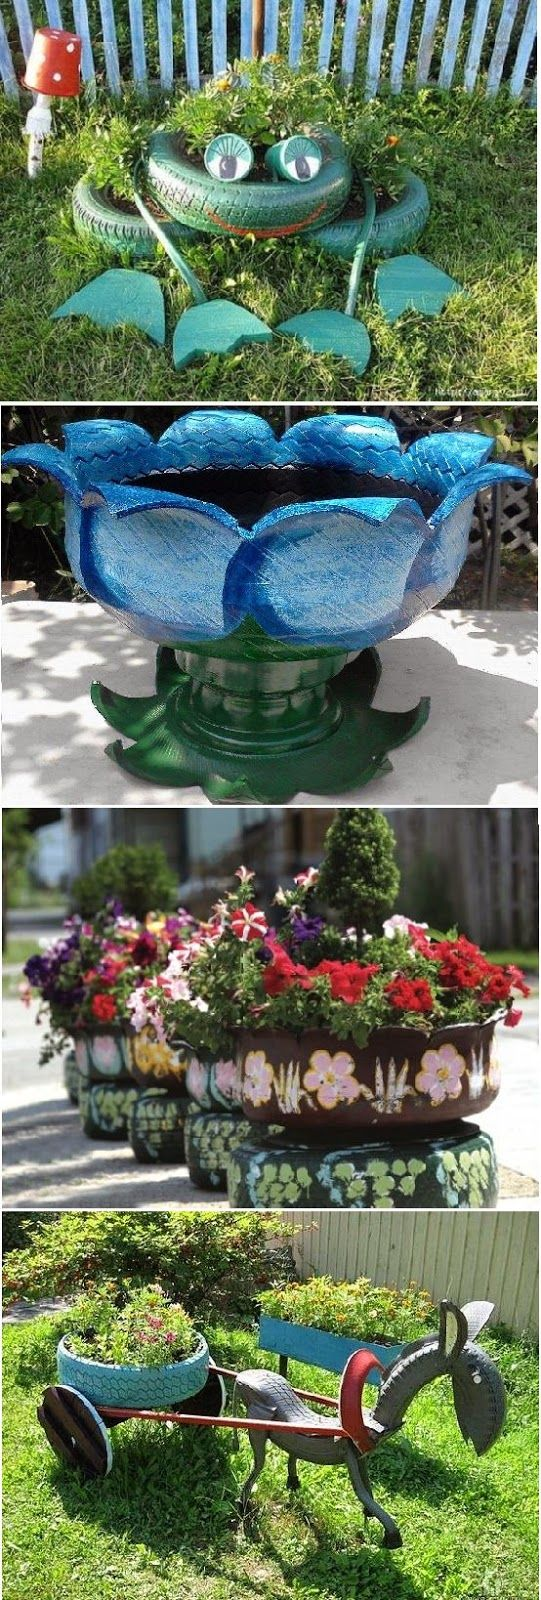 Old tire outdoor ornaments 17 tasteful recycling ideas for How to use old tires in a garden